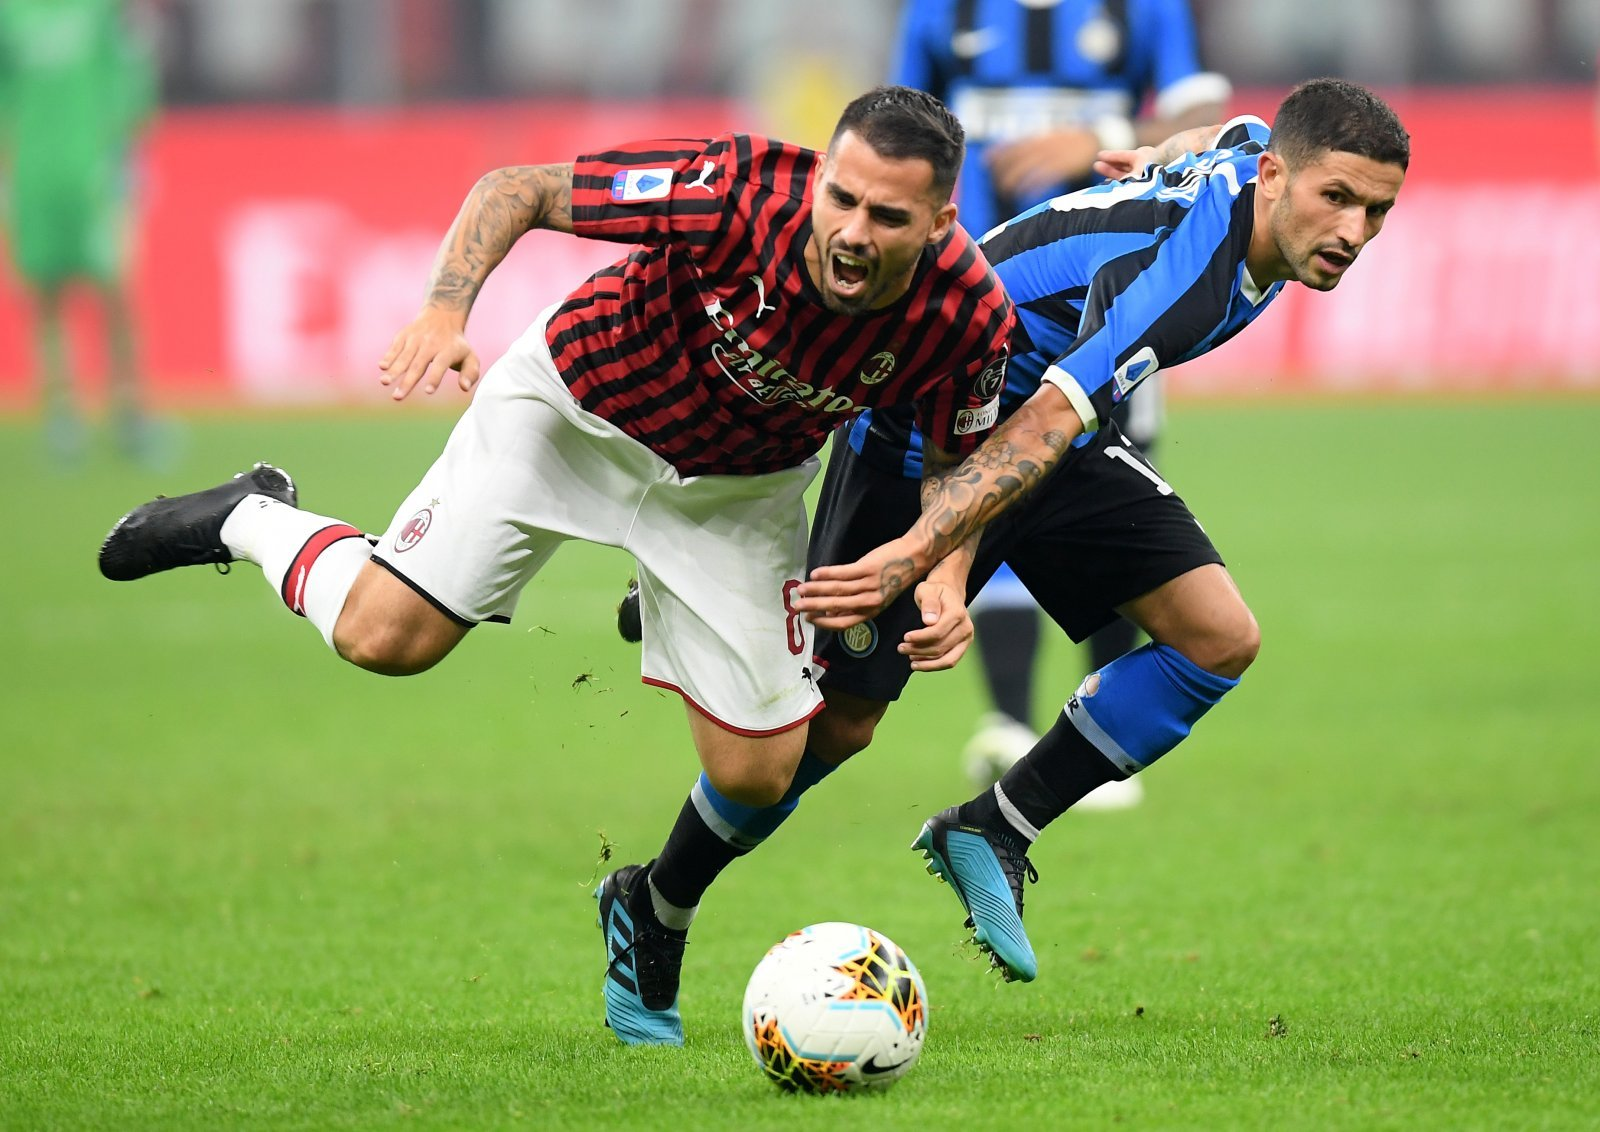 AC Milan: Suso has been given an ultimatum by the club